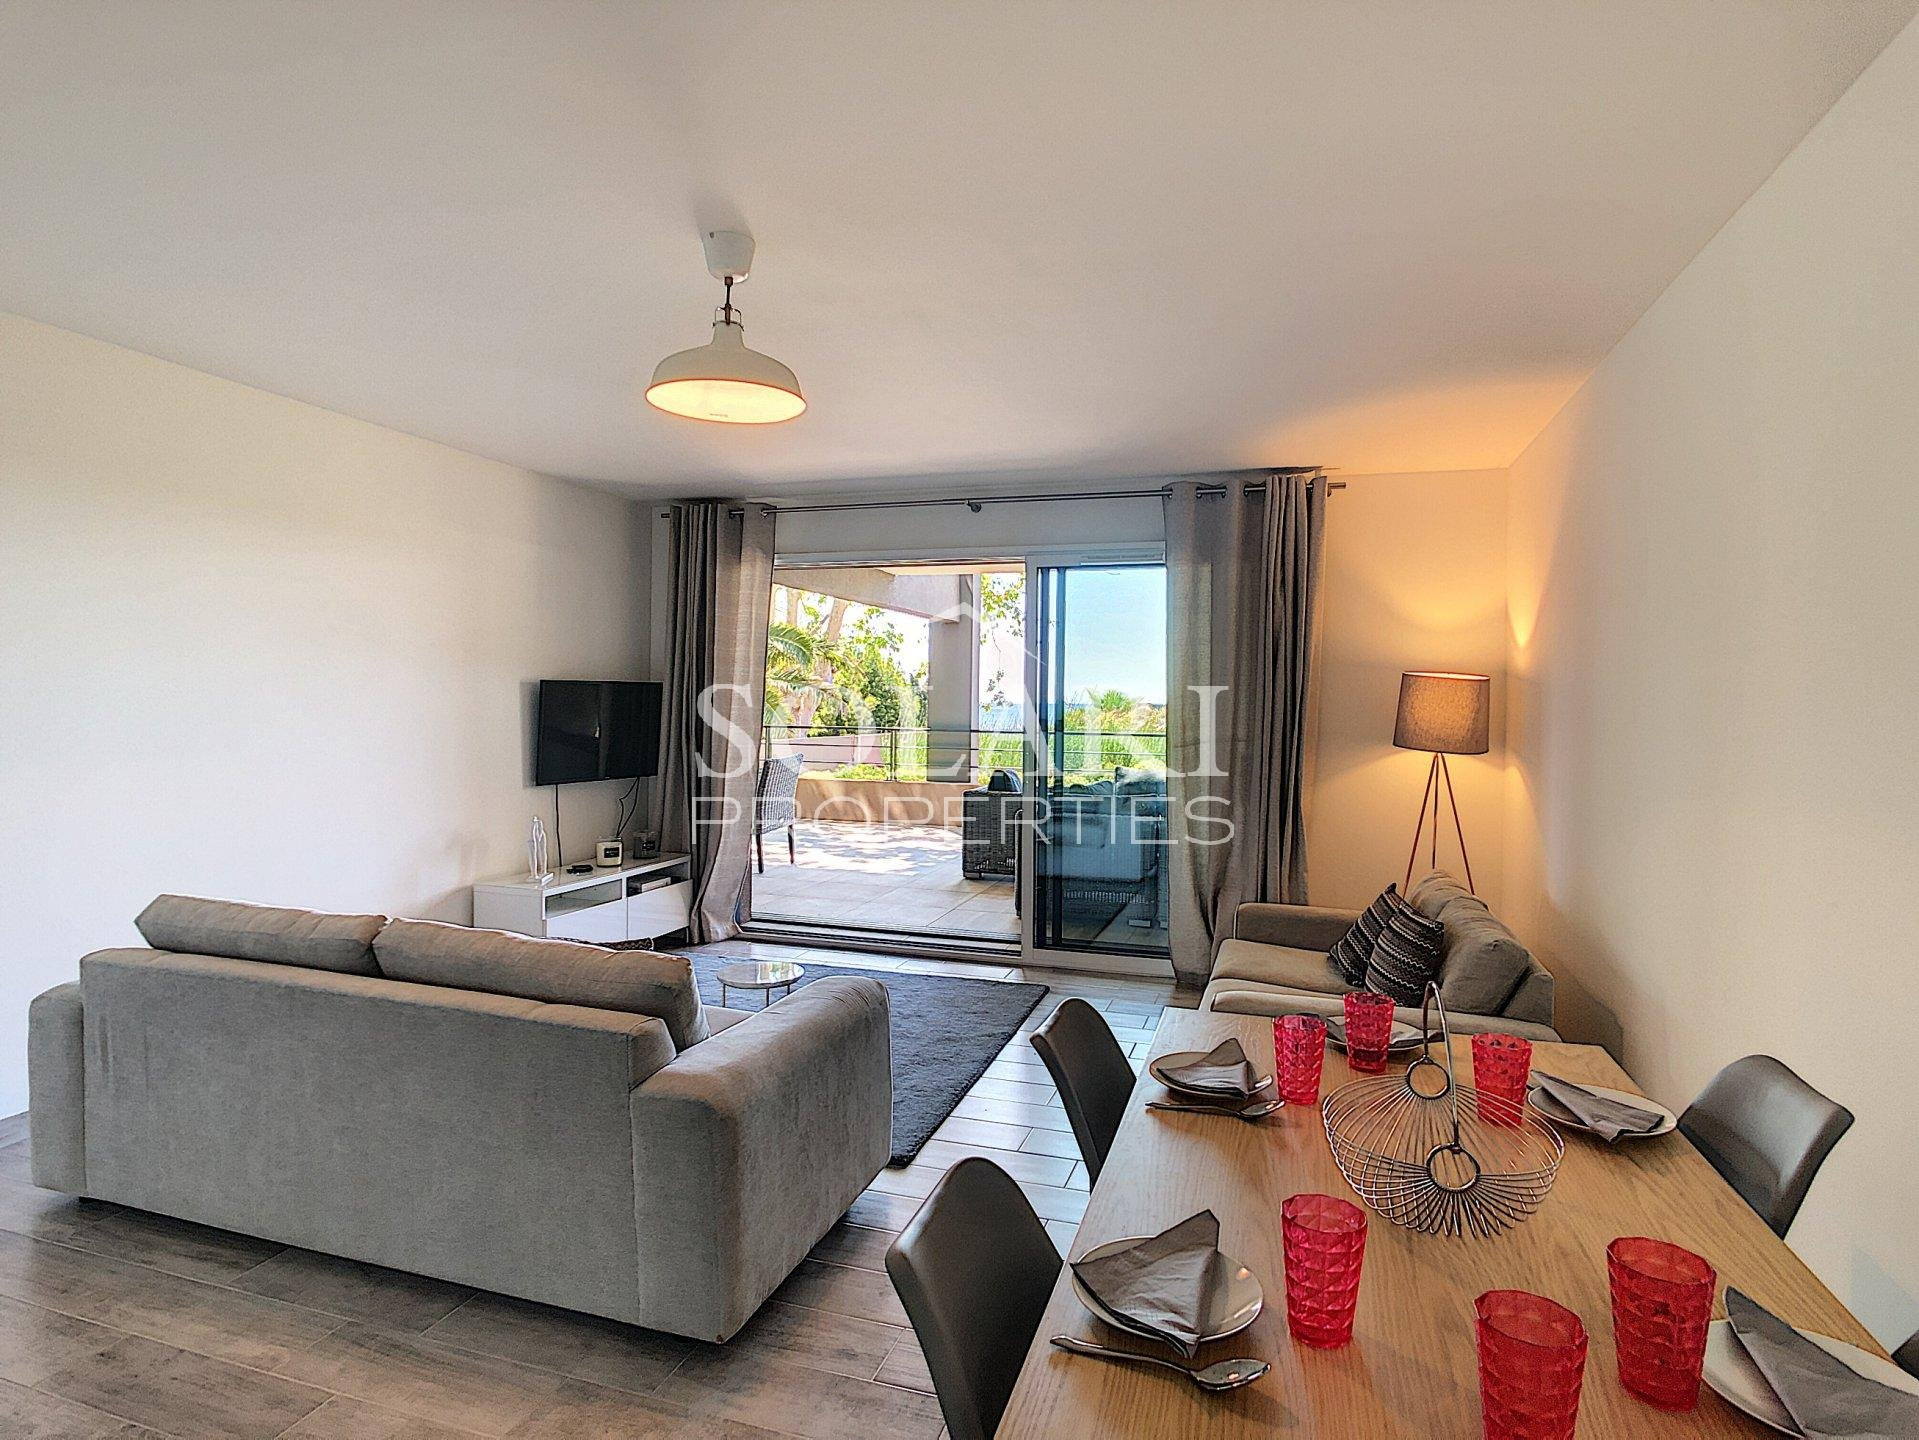 2 bedroom apartment in Theoule